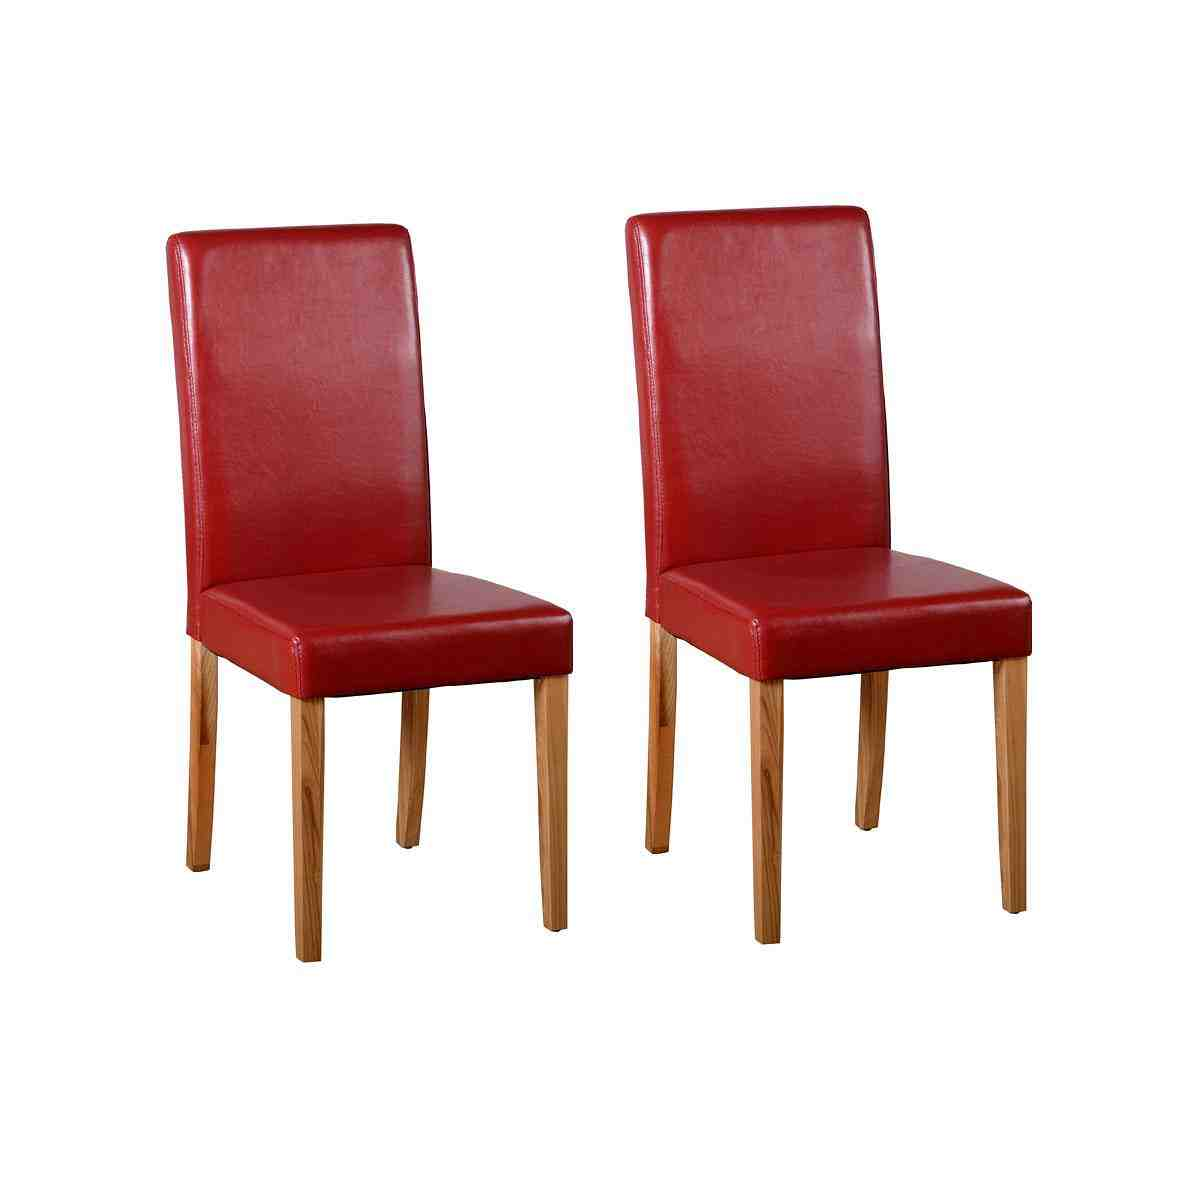 Red Leather Dining Chairs  Decor IdeasDecor Ideas